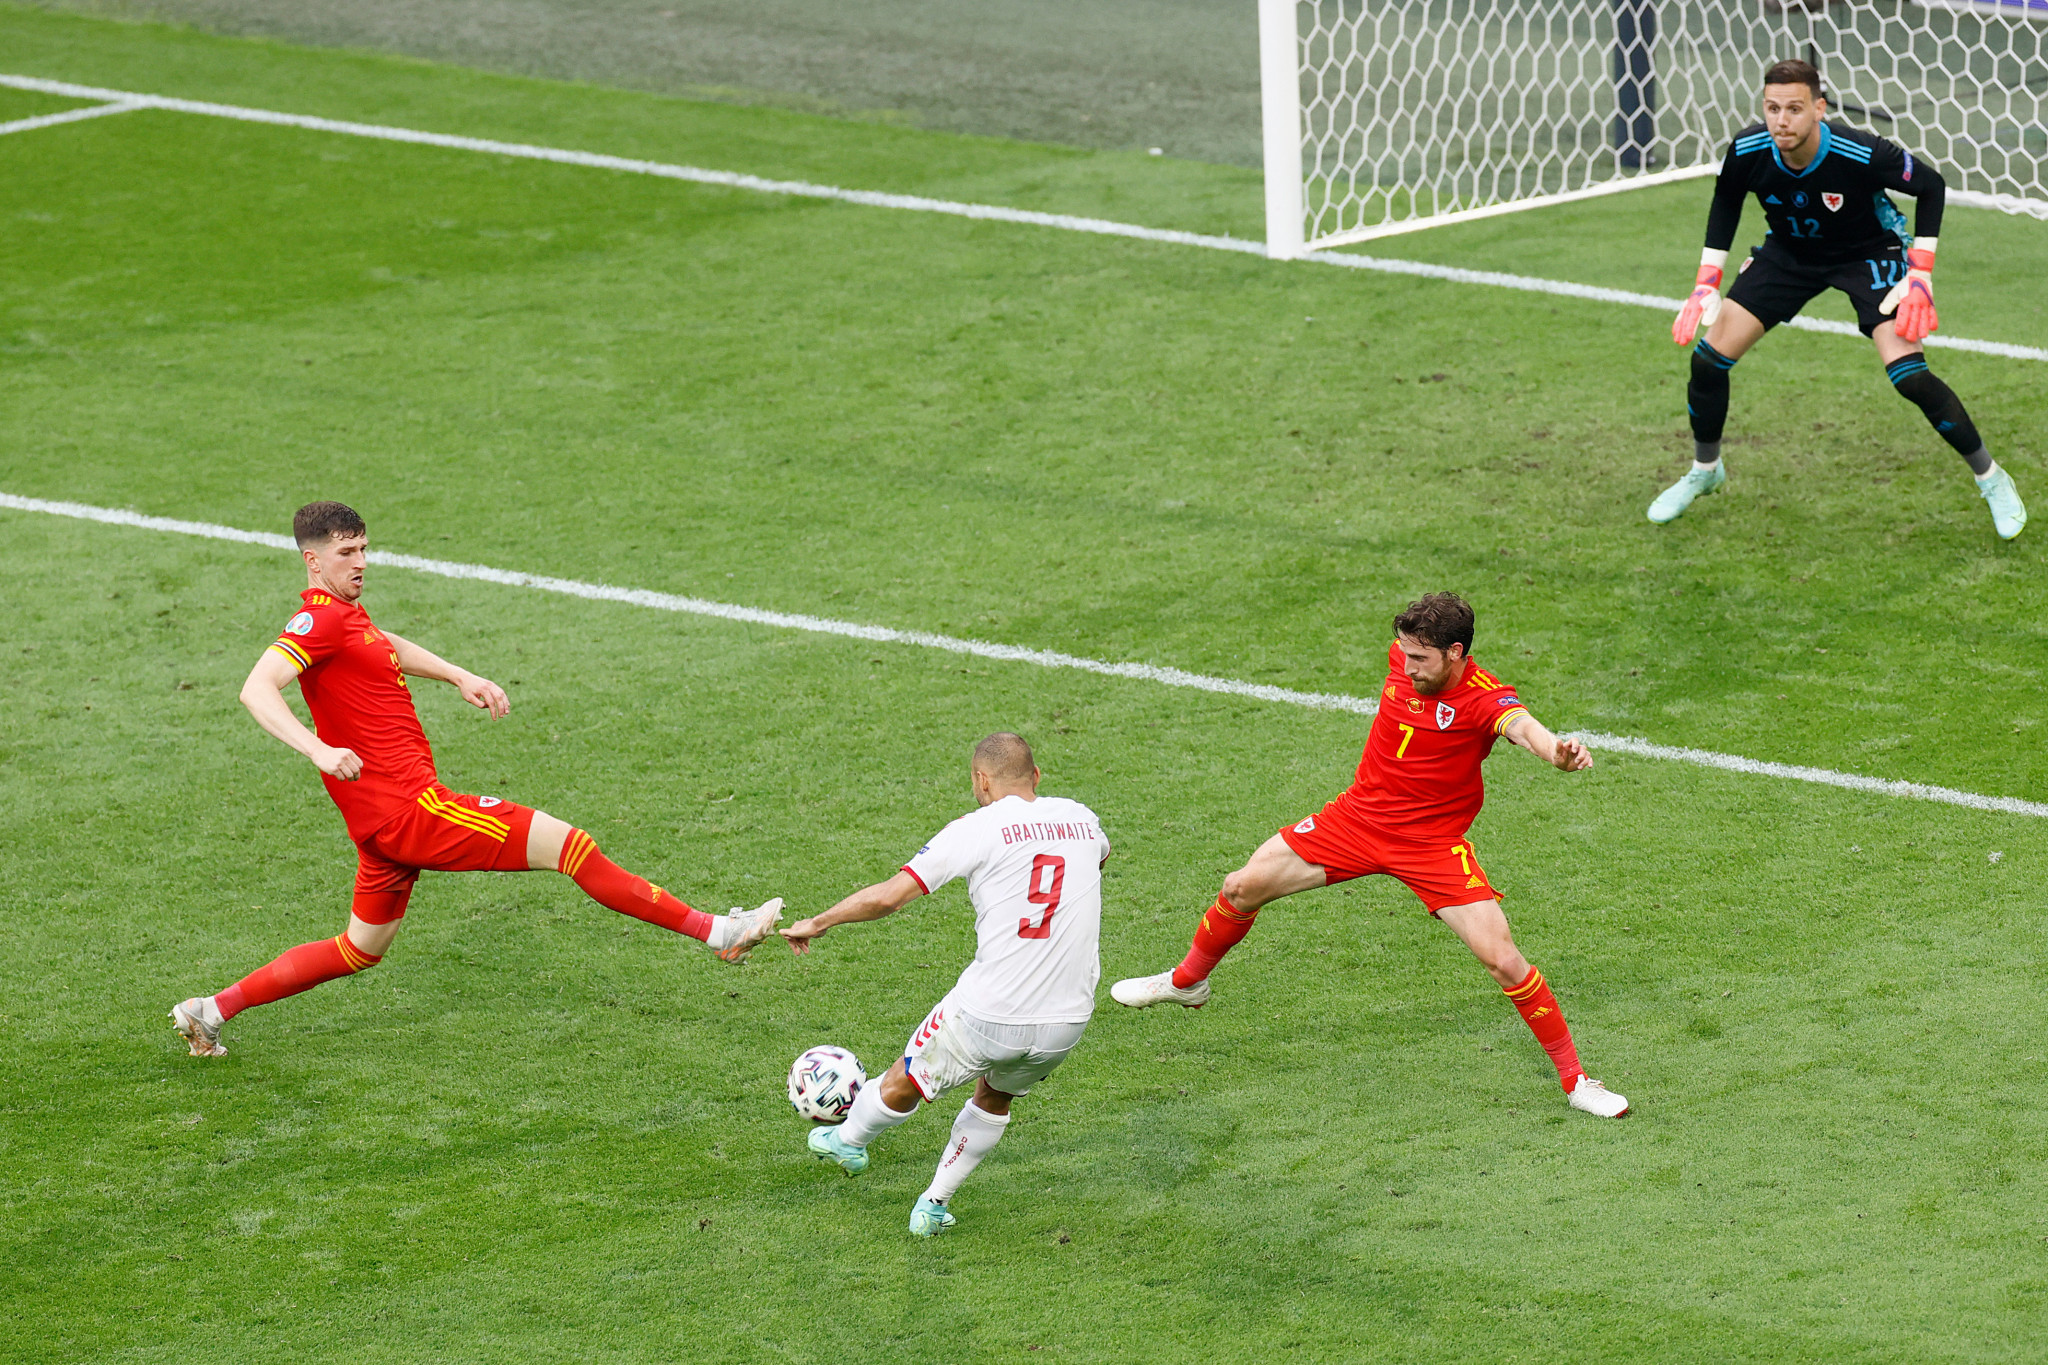 Martin Braithwaite's goal in stoppage time sealed a convincing 4-0 win for Denmark over Wales ©Getty Images